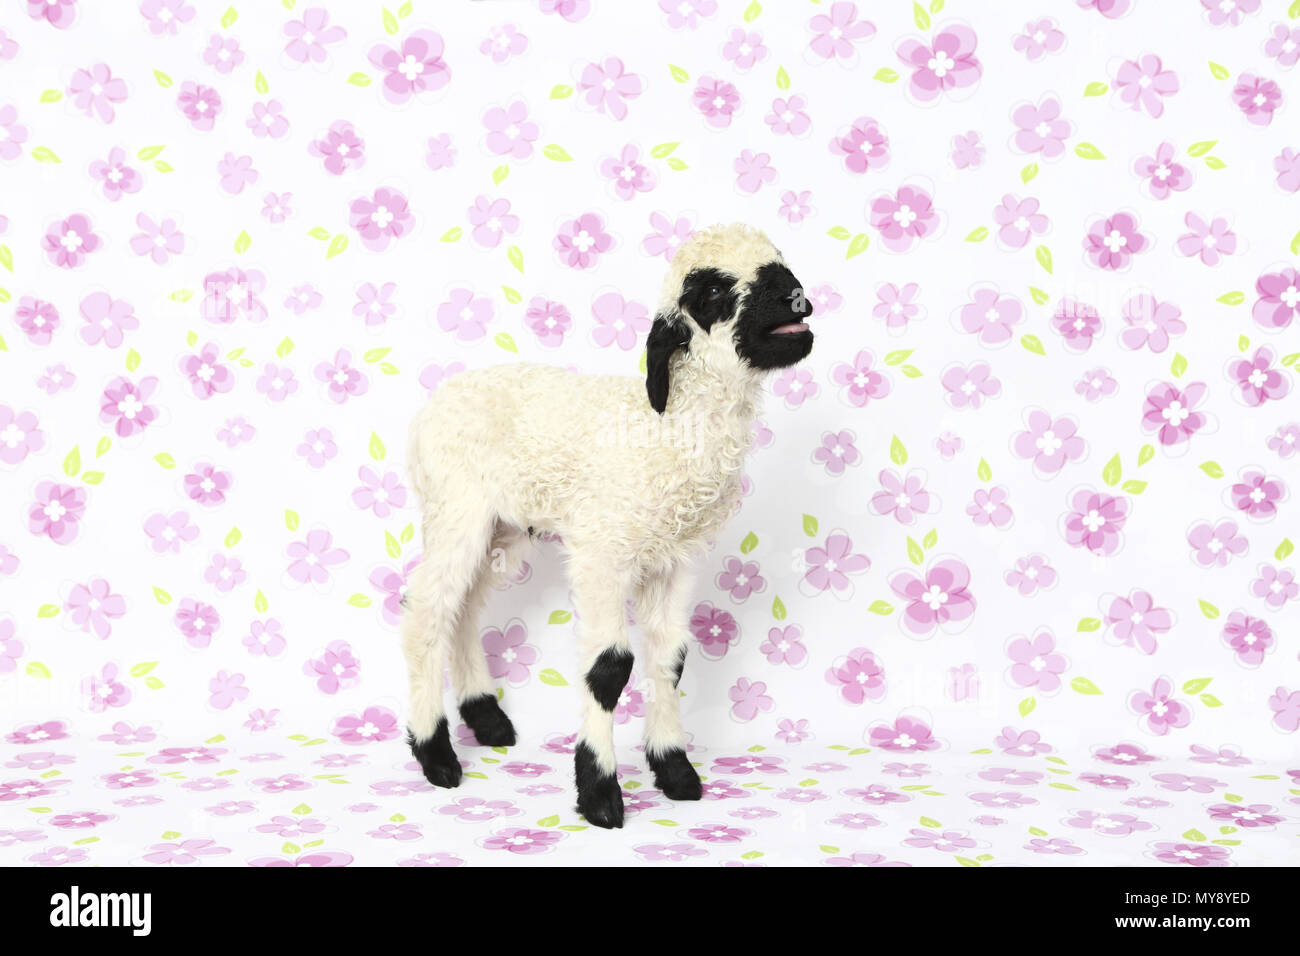 Valais Blacknose Sheep. Lamb (6 days old) standing while bleating. Studio picture against a white background with flowers. Germany - Stock Image